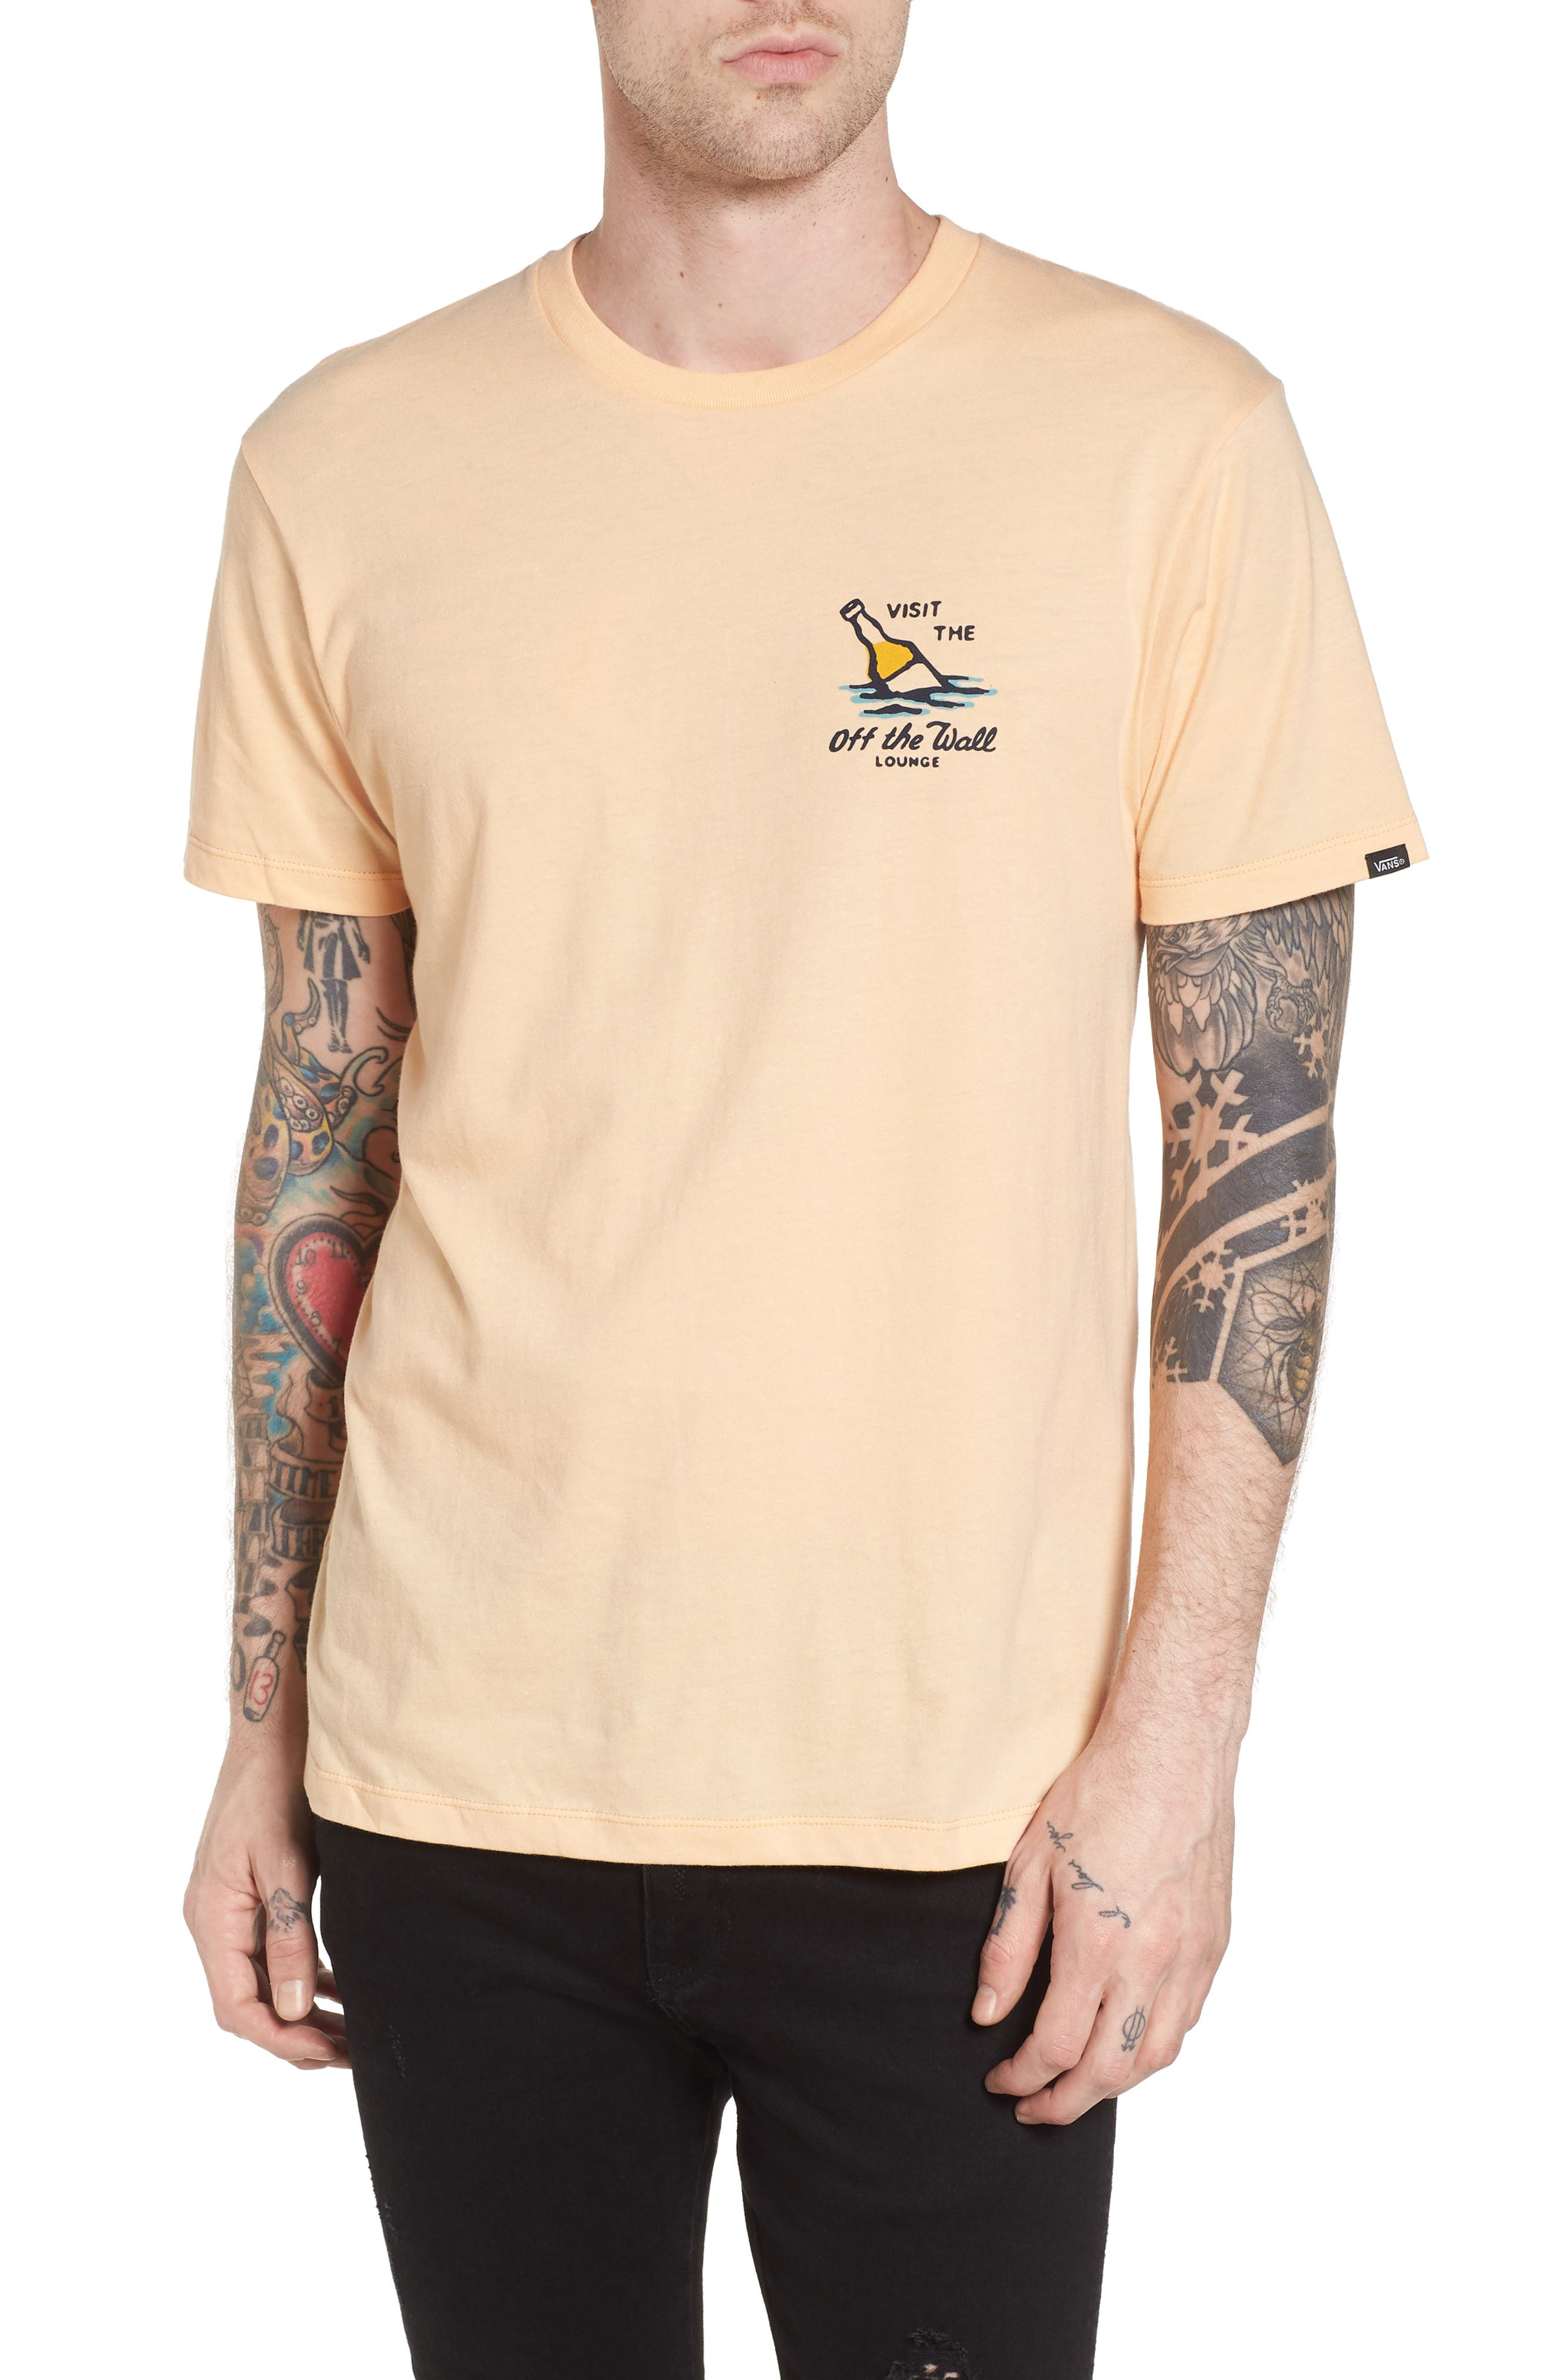 Off the Wall Lounge T-Shirt,                             Main thumbnail 1, color,                             Apricot Ice